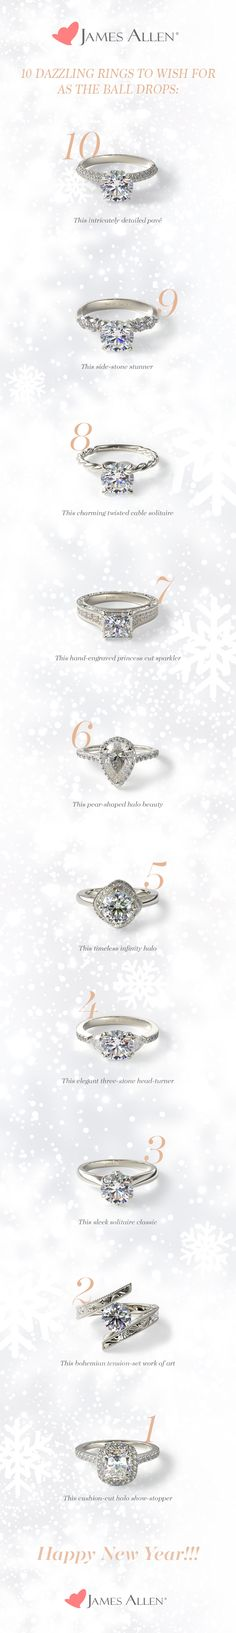 Dazzling engagement rings for every style. Design your dream engagement ring and make 2016 the best year yet! Which of these beauties will you be wishing for as the clock strikes midnight? Dream Engagement Rings, Wedding Engagement, Wedding Bands, Perfect Wedding, Dream Wedding, Wedding Day, James Allen Rings, Wedding Goals, Here Comes The Bride